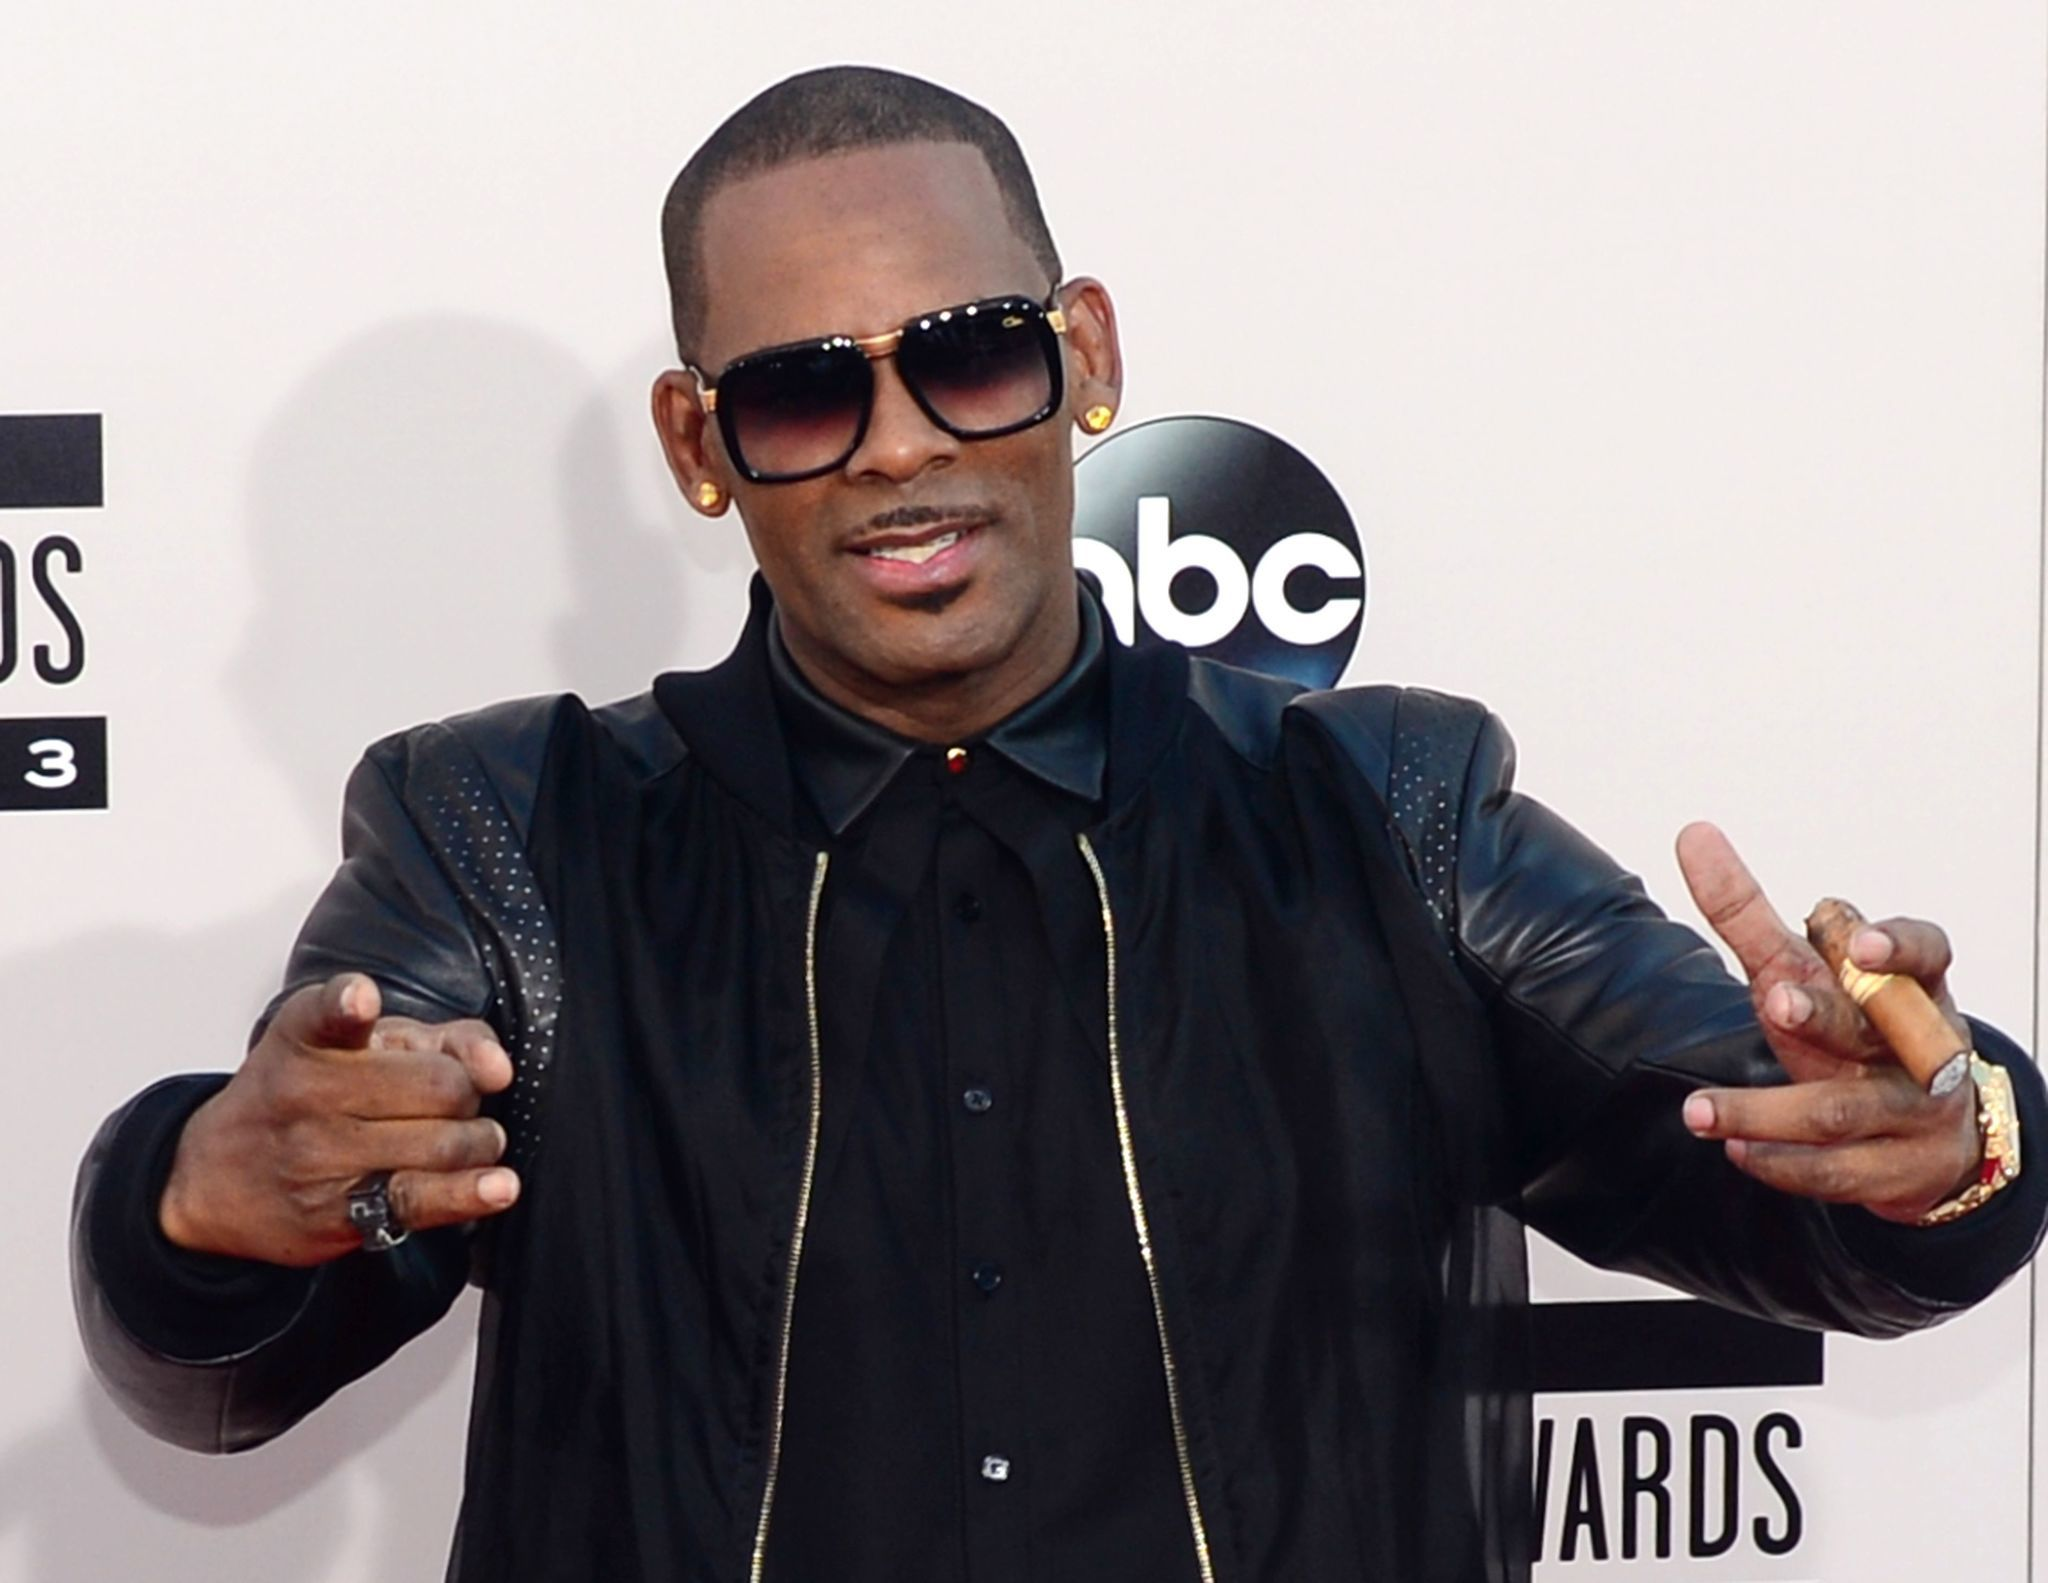 R. Kelly accused of sexual assault and infecting woman with herpes - Chicago Tribune